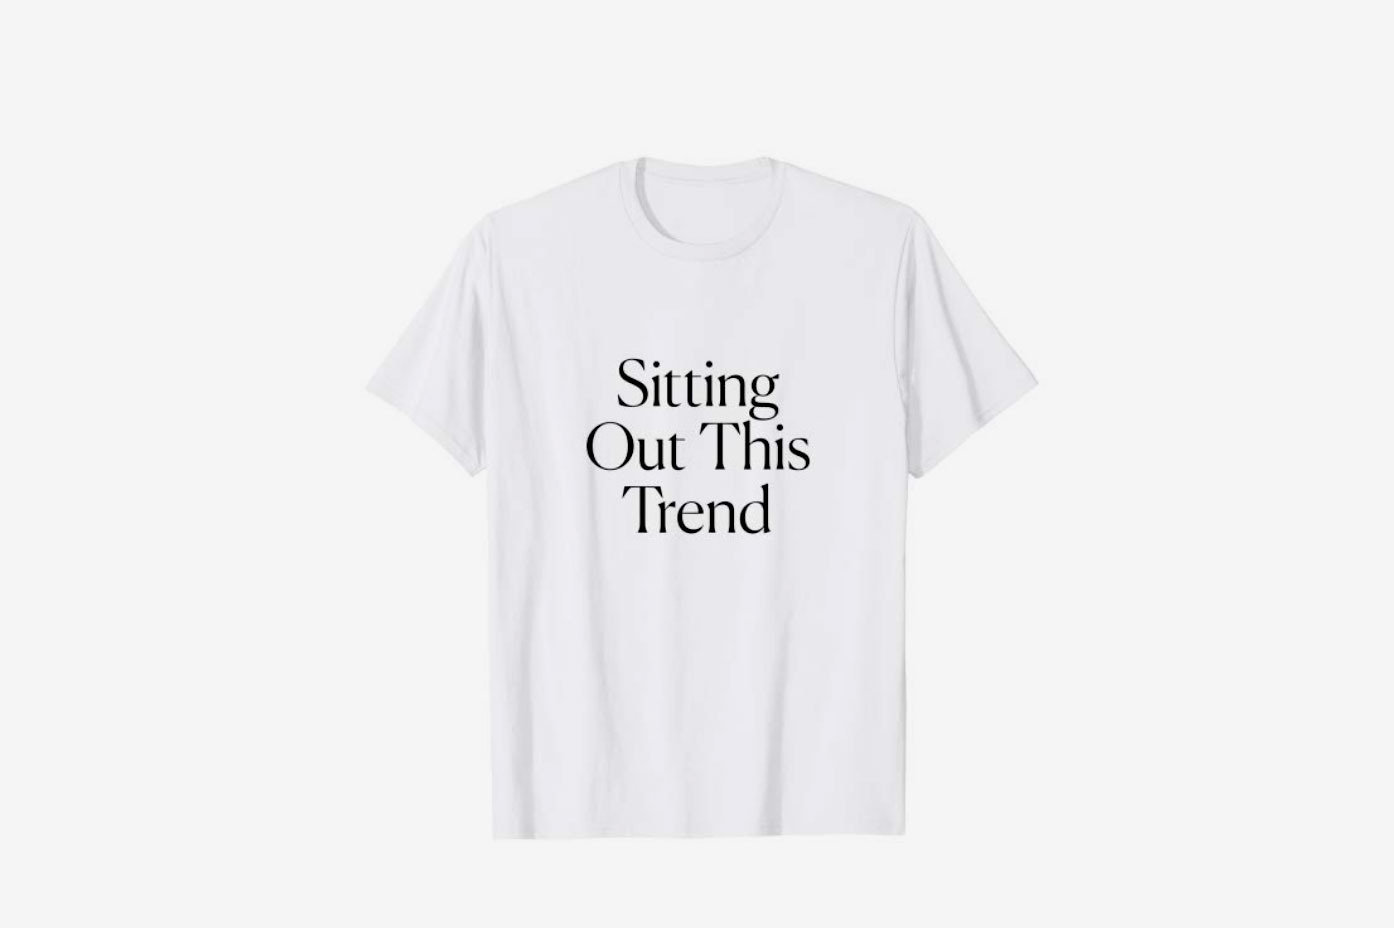 Sitting Out This Trend Tee